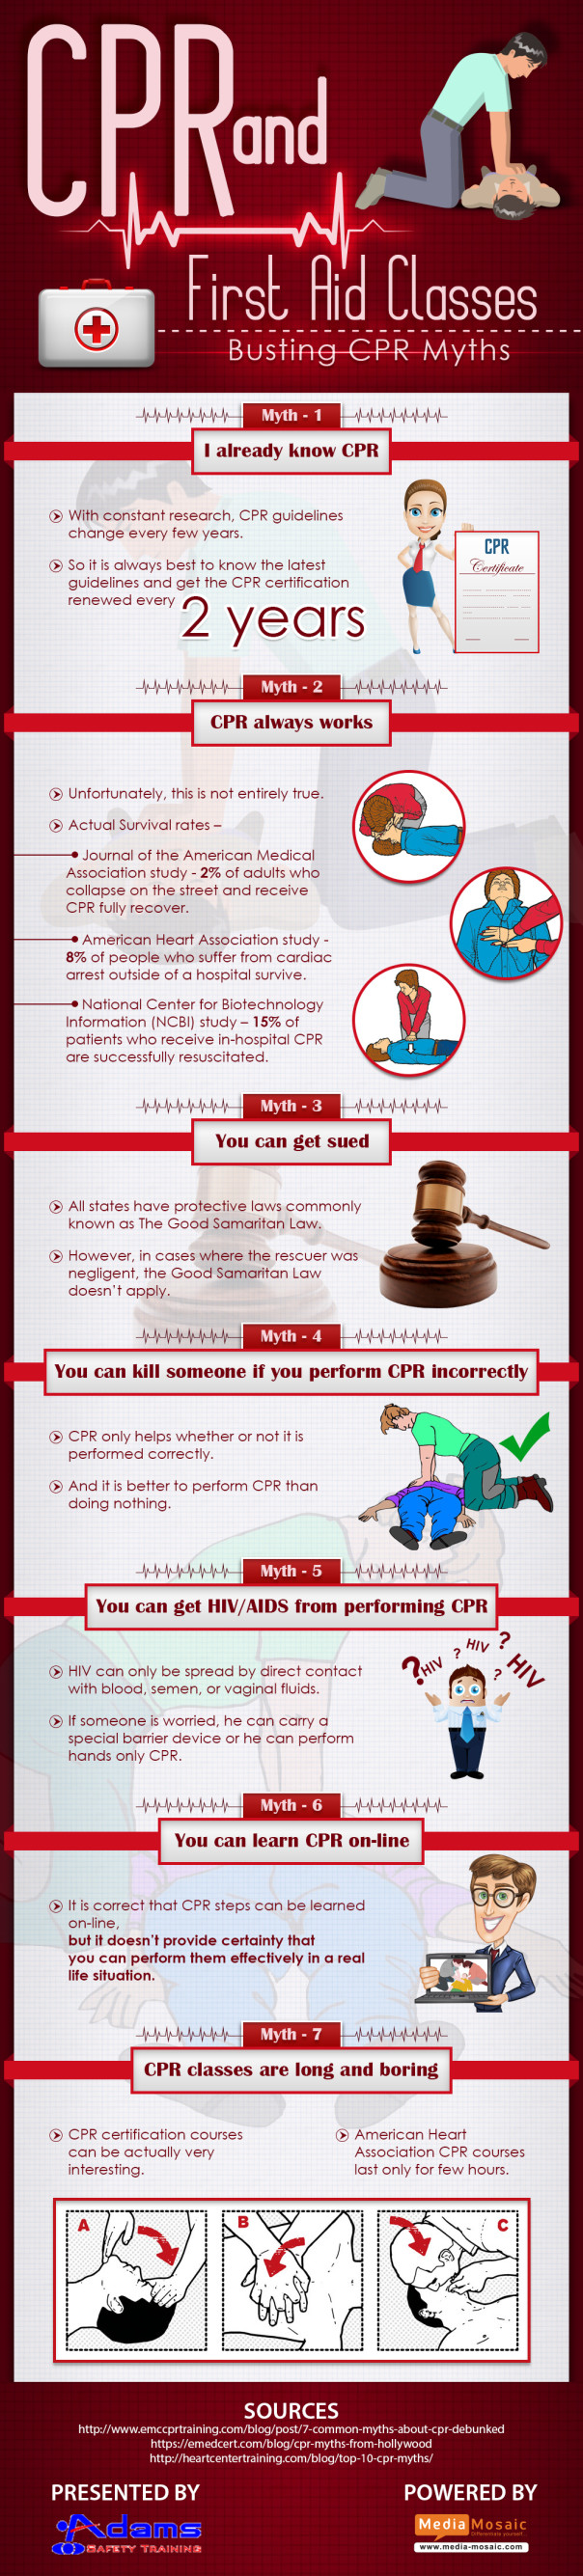 7 CPR Myths and their explanations